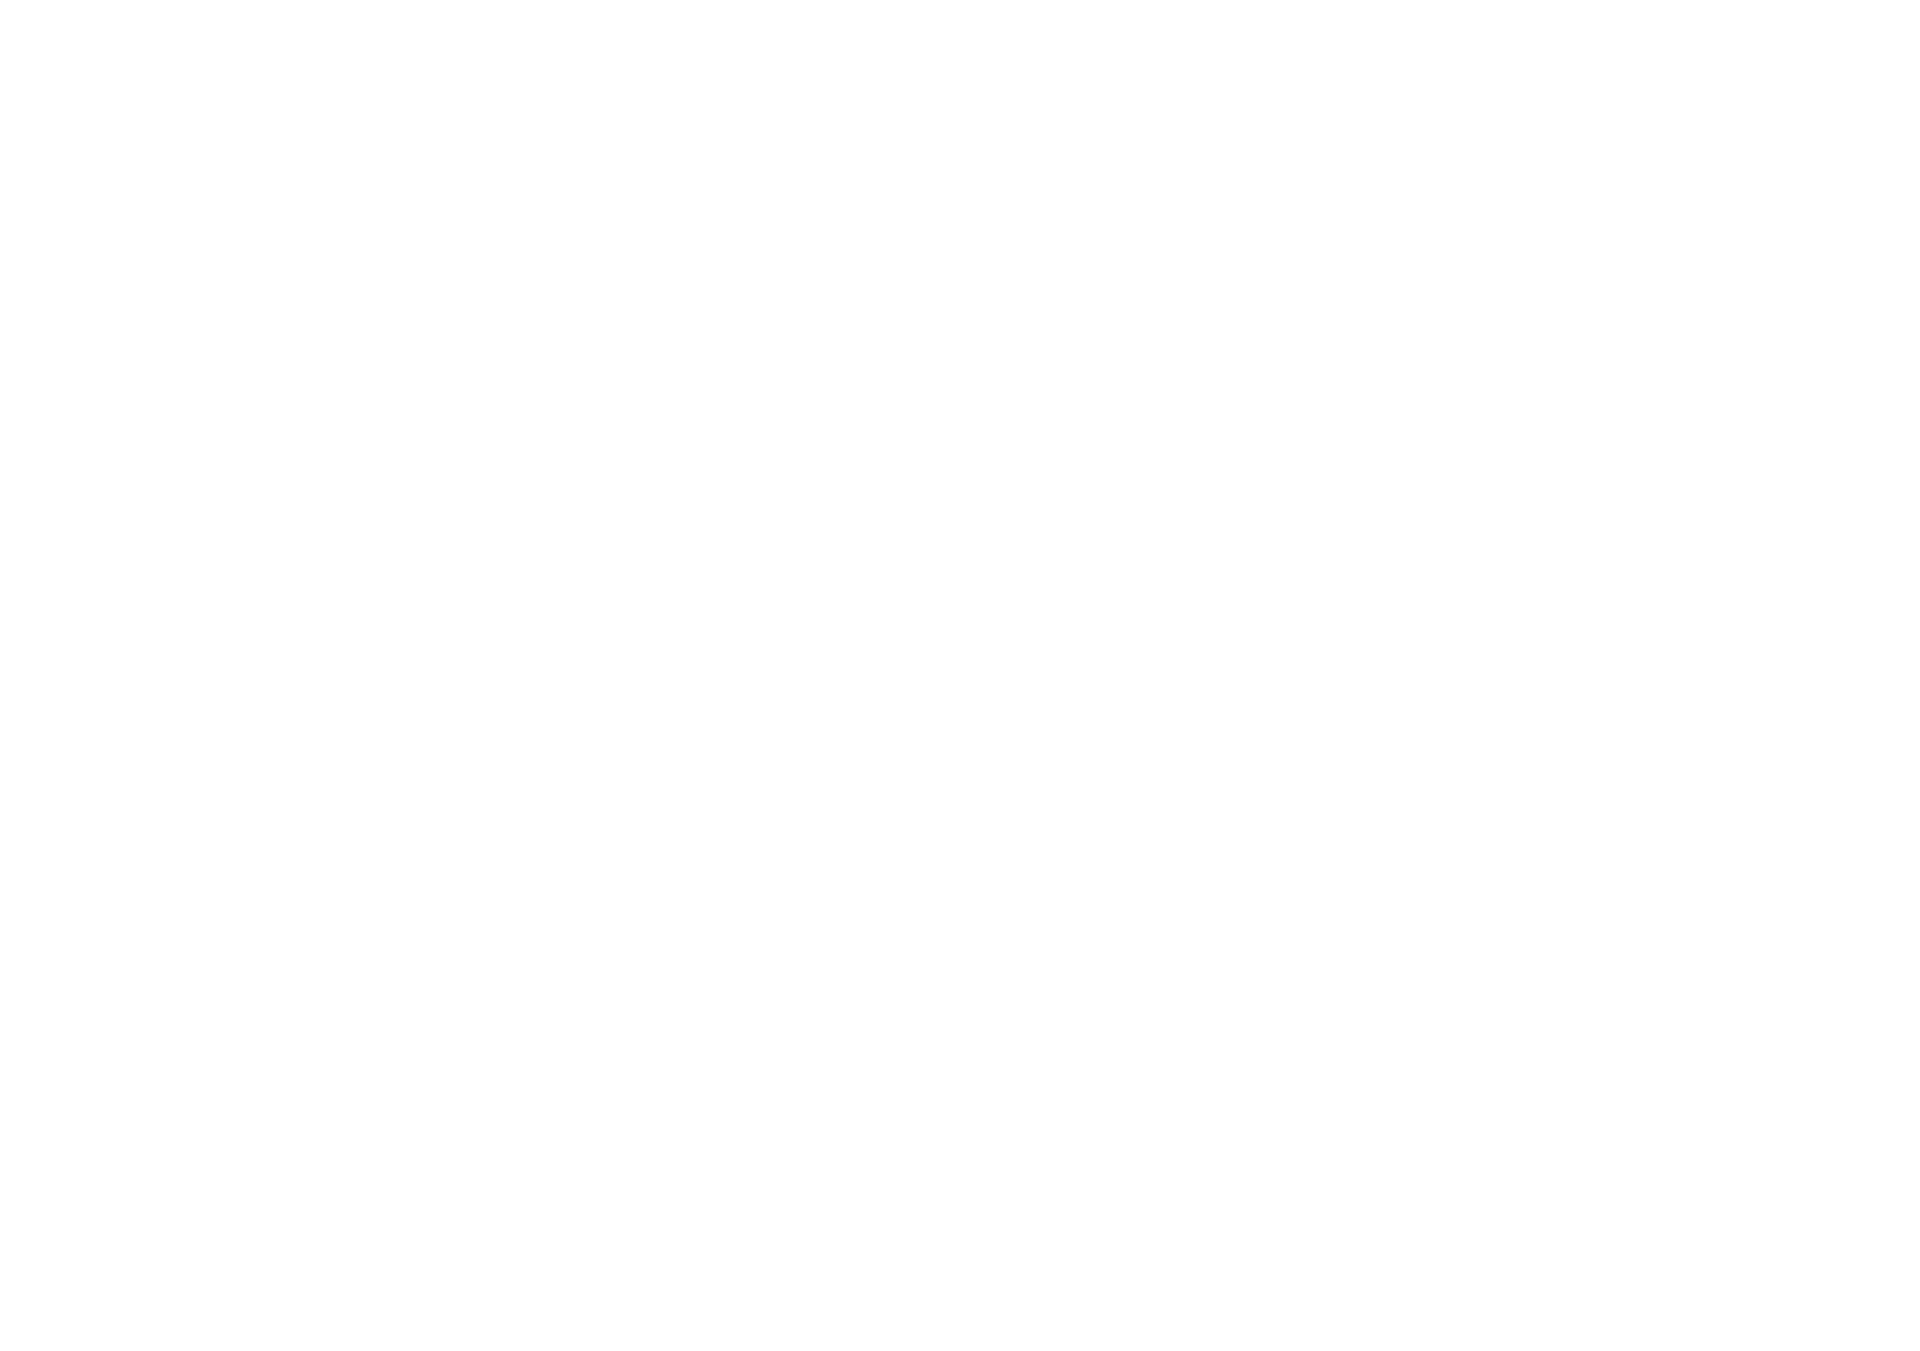 Gobal Paratransit LOGO SYMBOL White Global Paratransit